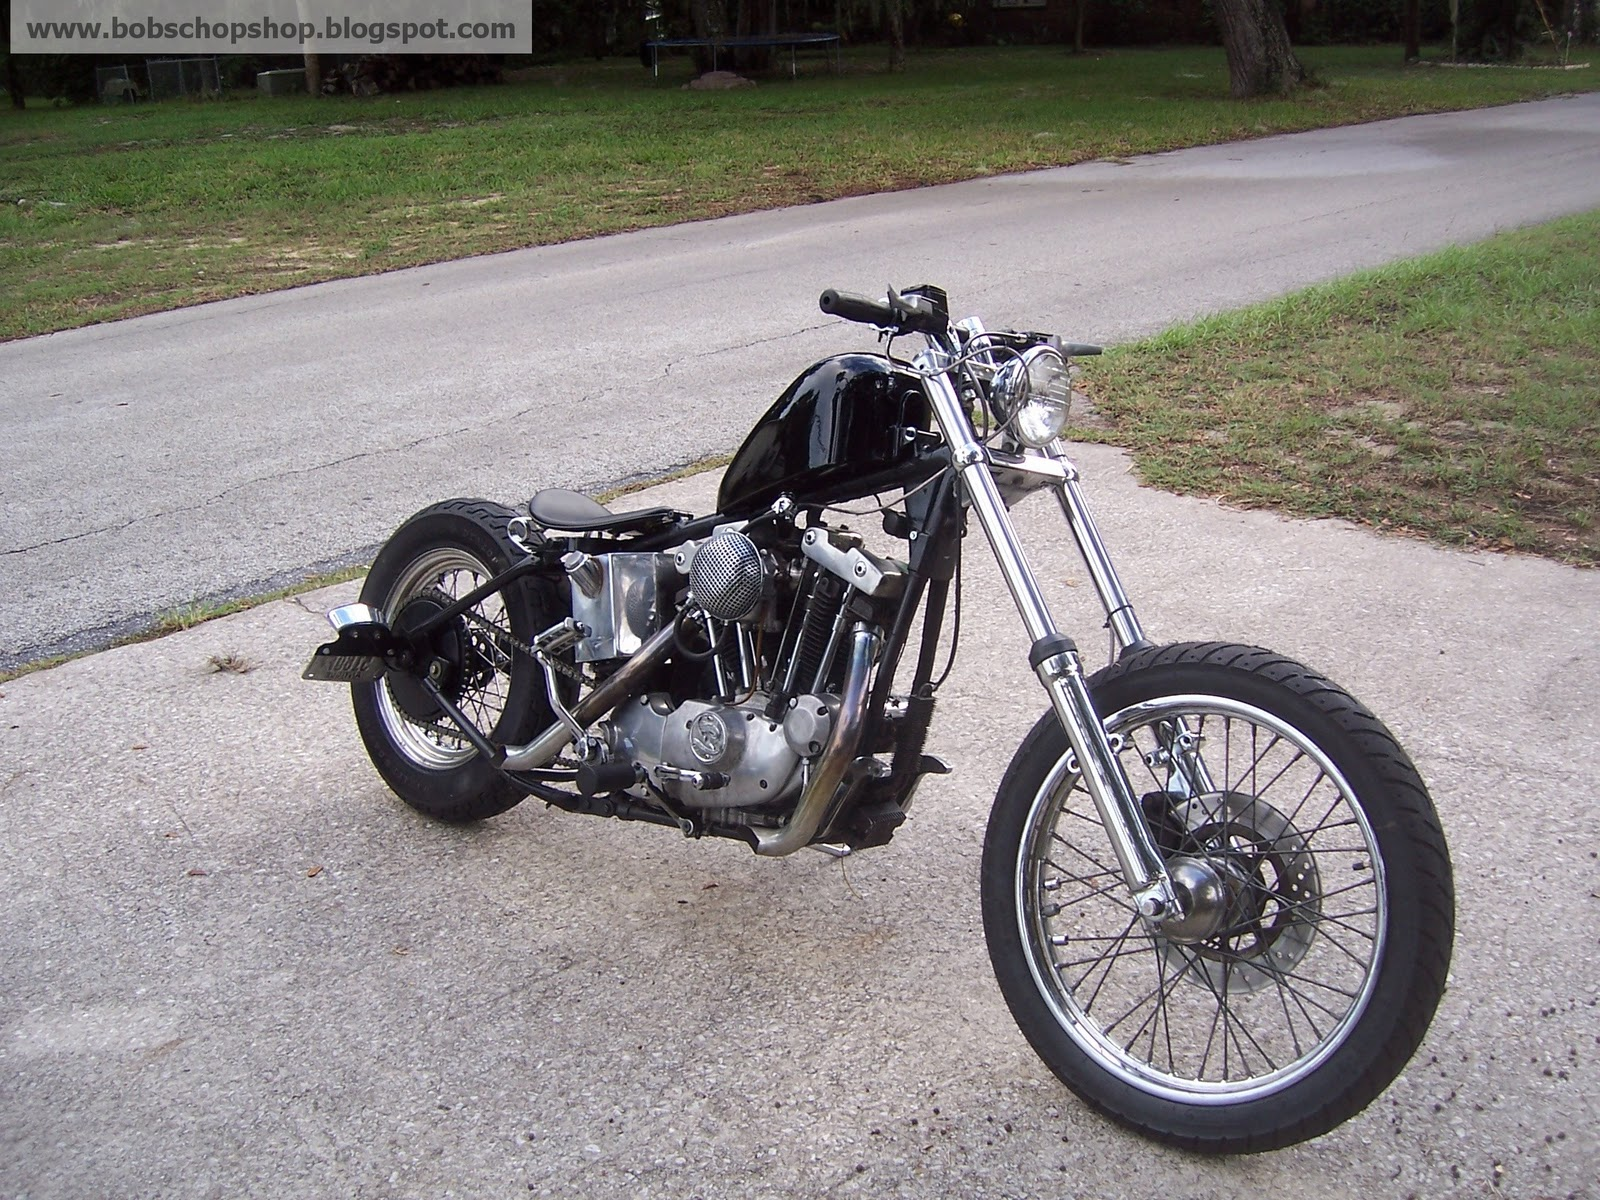 Wiring Diagram Dyna Bobber Library 1982 Harley Davidson Sportster 1973 Ironhead Chopper Project